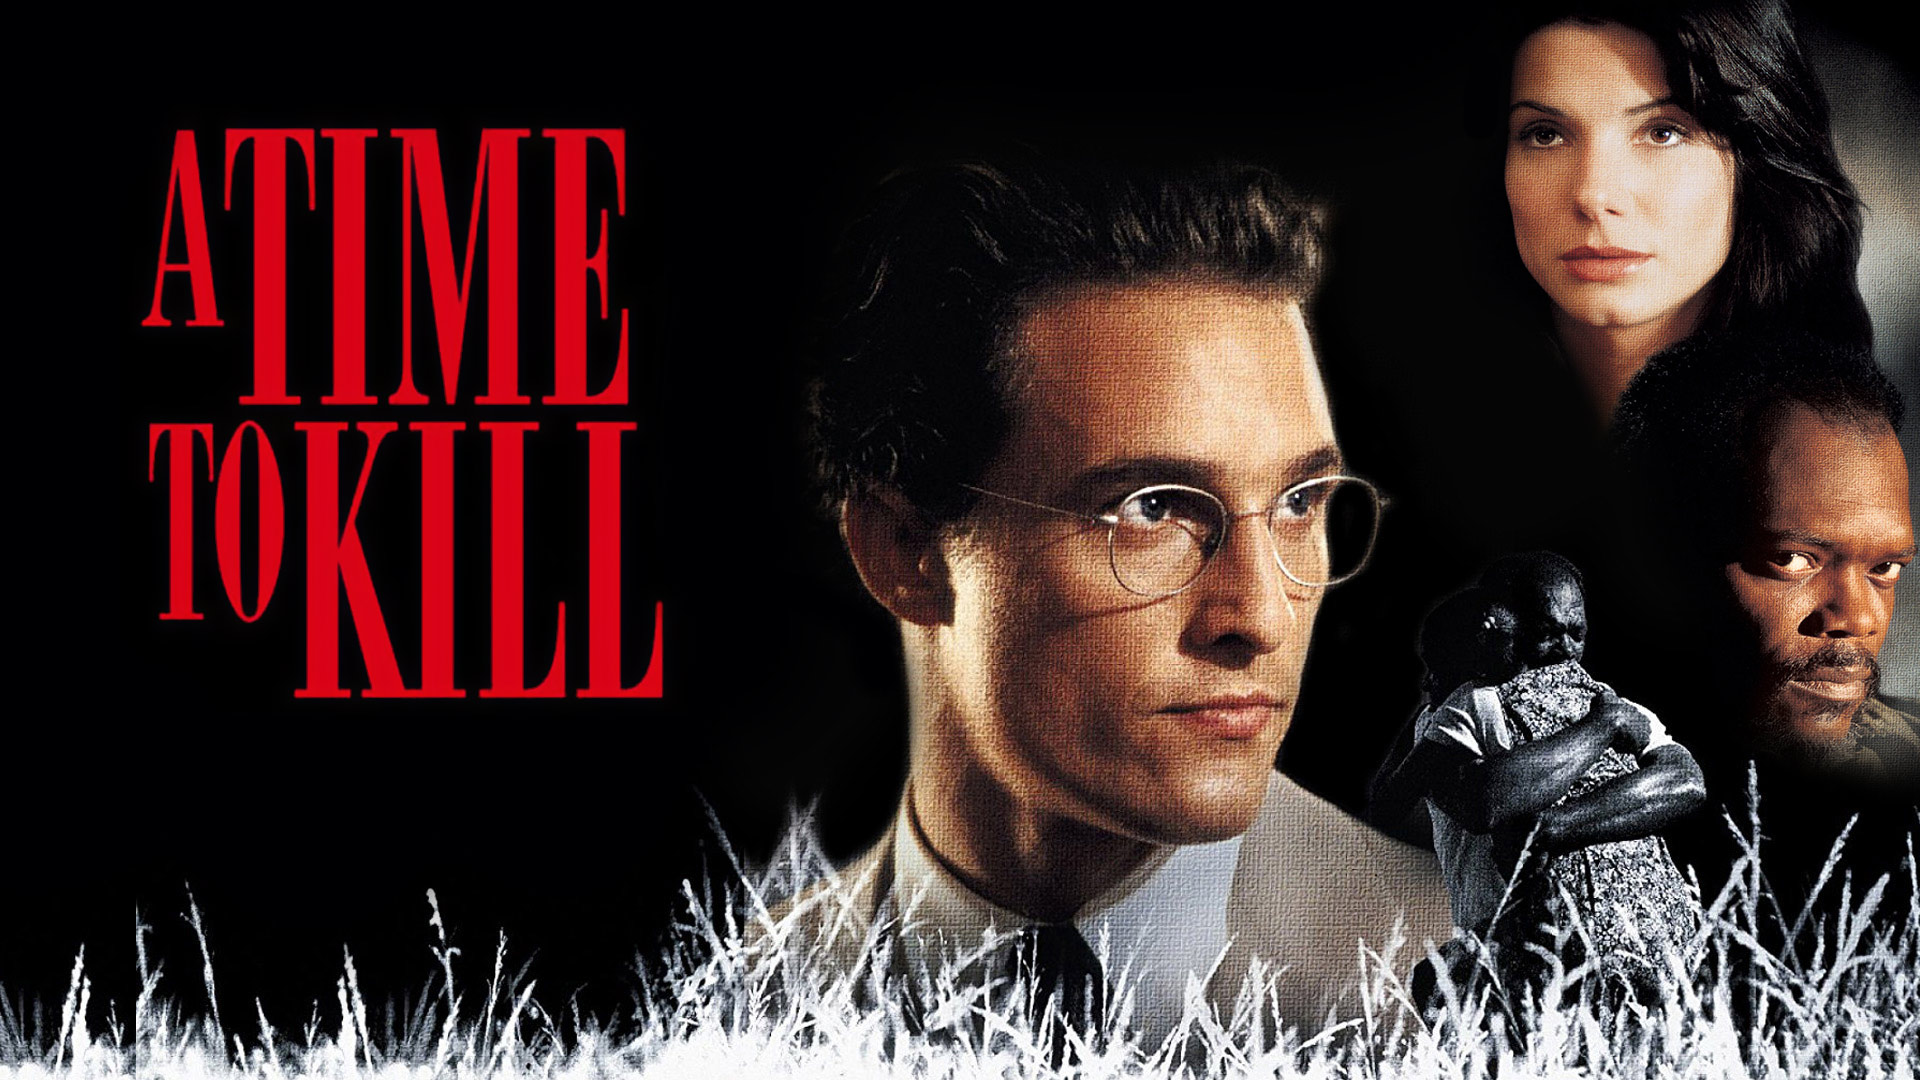 A Time to Kill (字幕版)